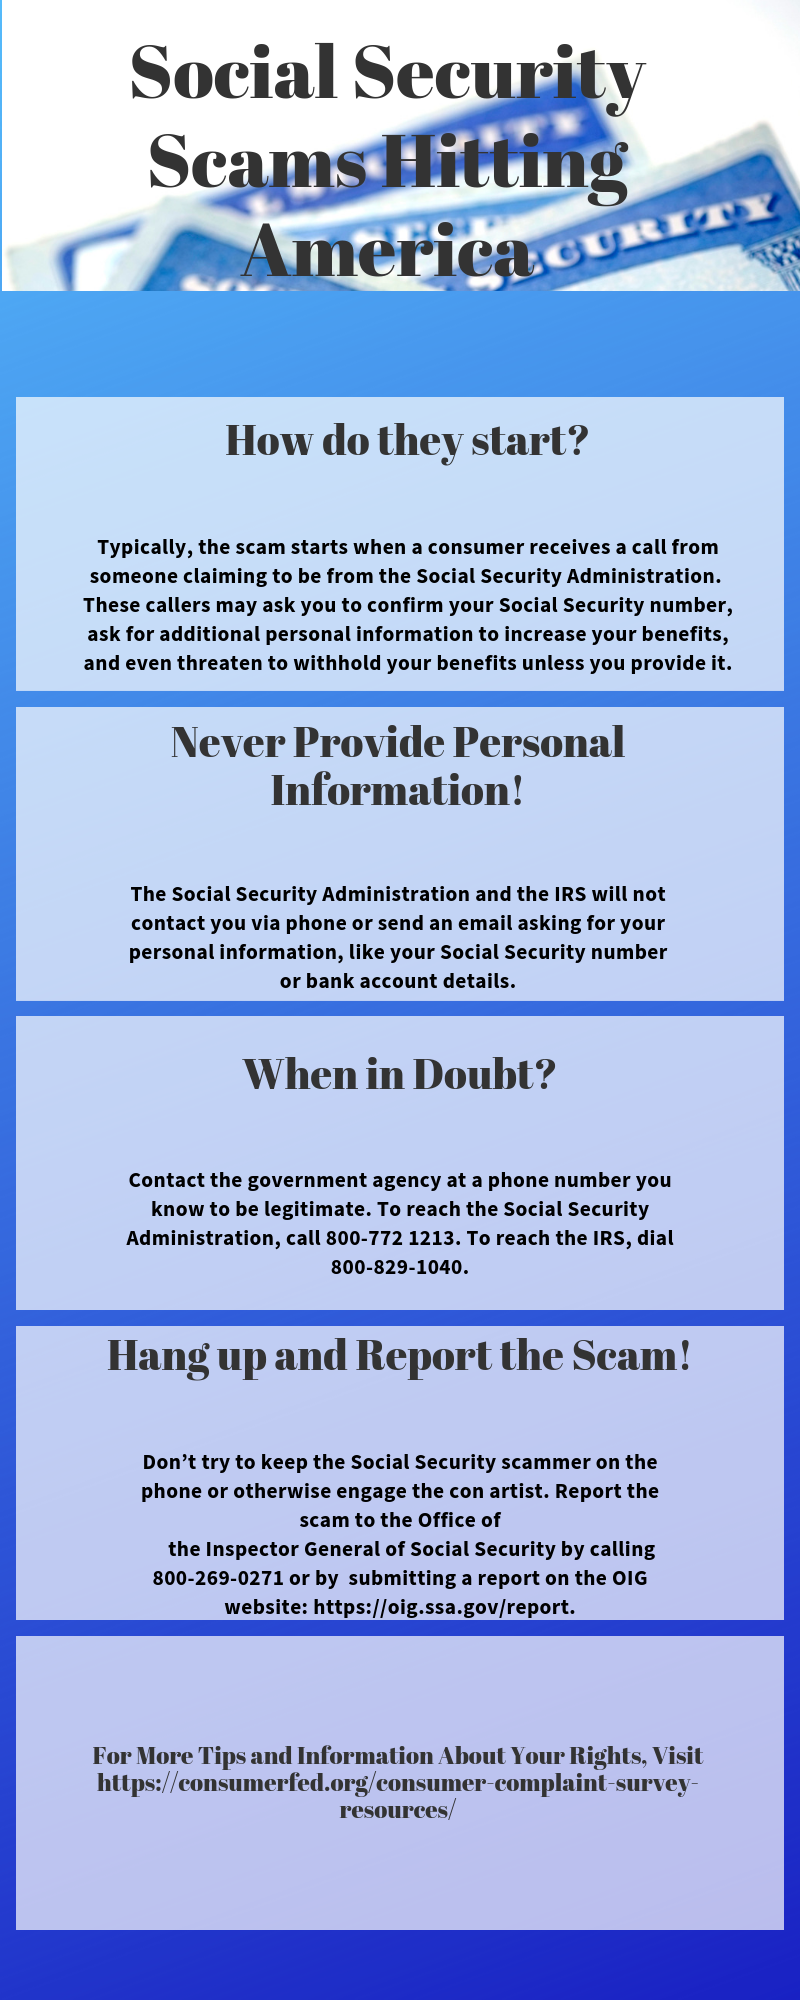 Social Security Scams Hit Americans Consumer Federation Of America